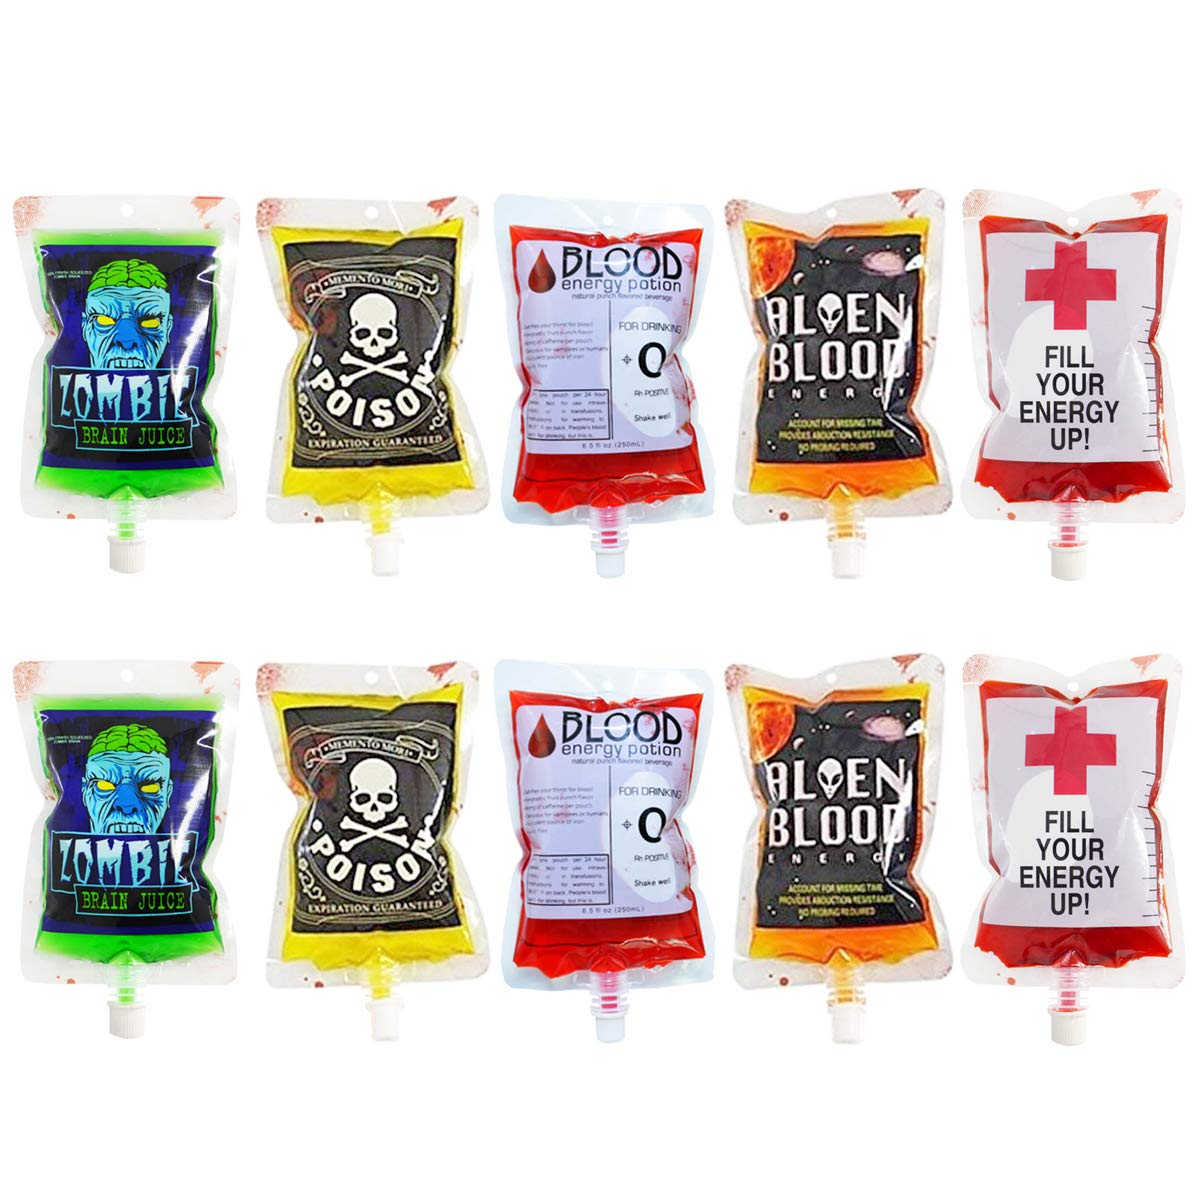 megrocle 10 Pack Novelty Blood Bags for Drinks Container, Reusable Food Grade Bags 8.5oz with Cap, 5 Patterns Halloween Party Cups for Theme Parties, Zombie, Vampire Party Favors